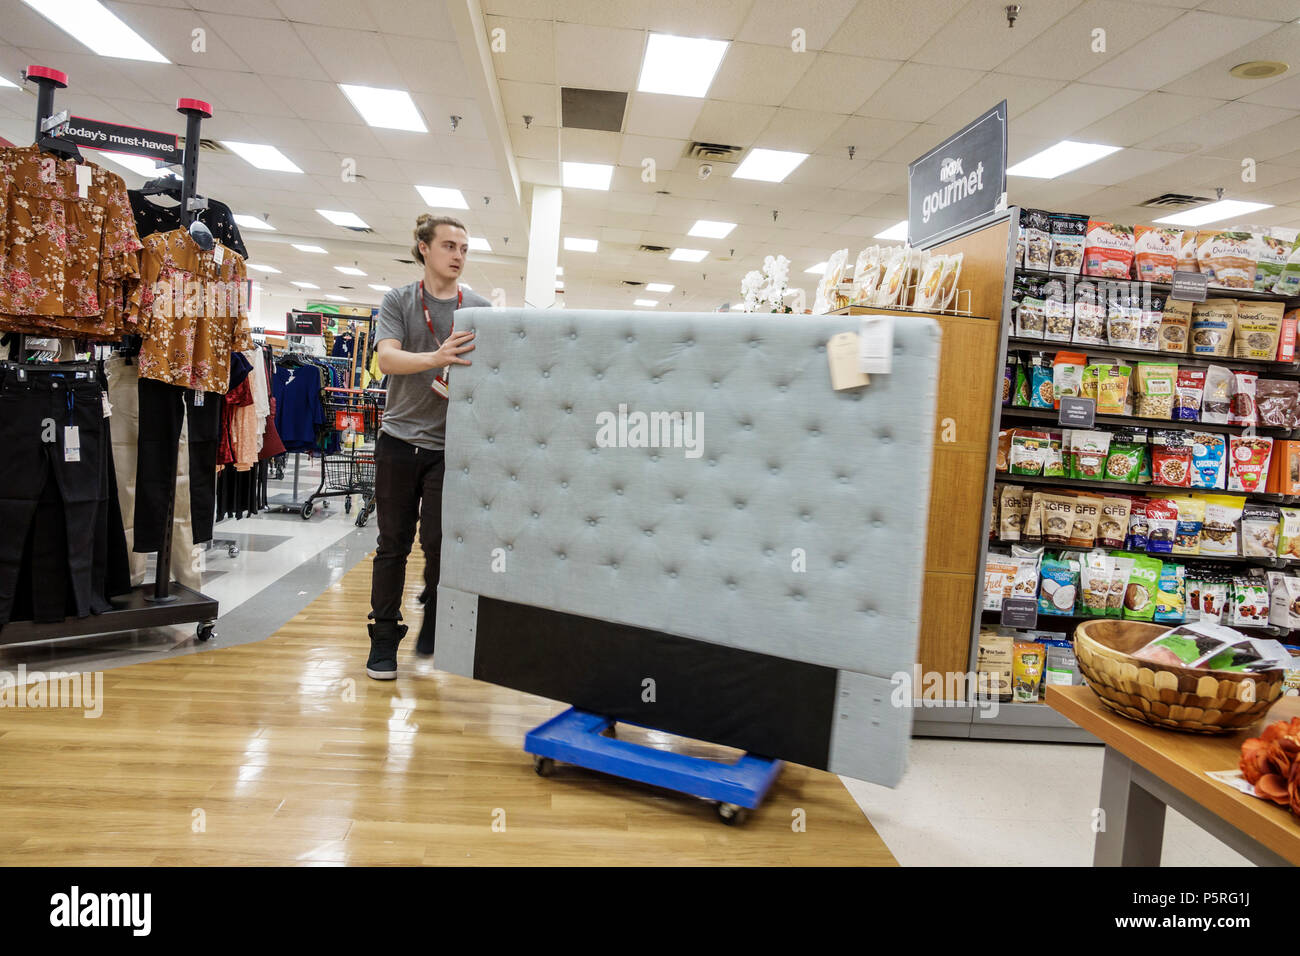 Stuart Florida T.J. TJ Maxx Discount Outlet Department Store Interior  Display Sale Padded Bed Headboard Stock Clerk Moving Furniture Man Employee  Young ...